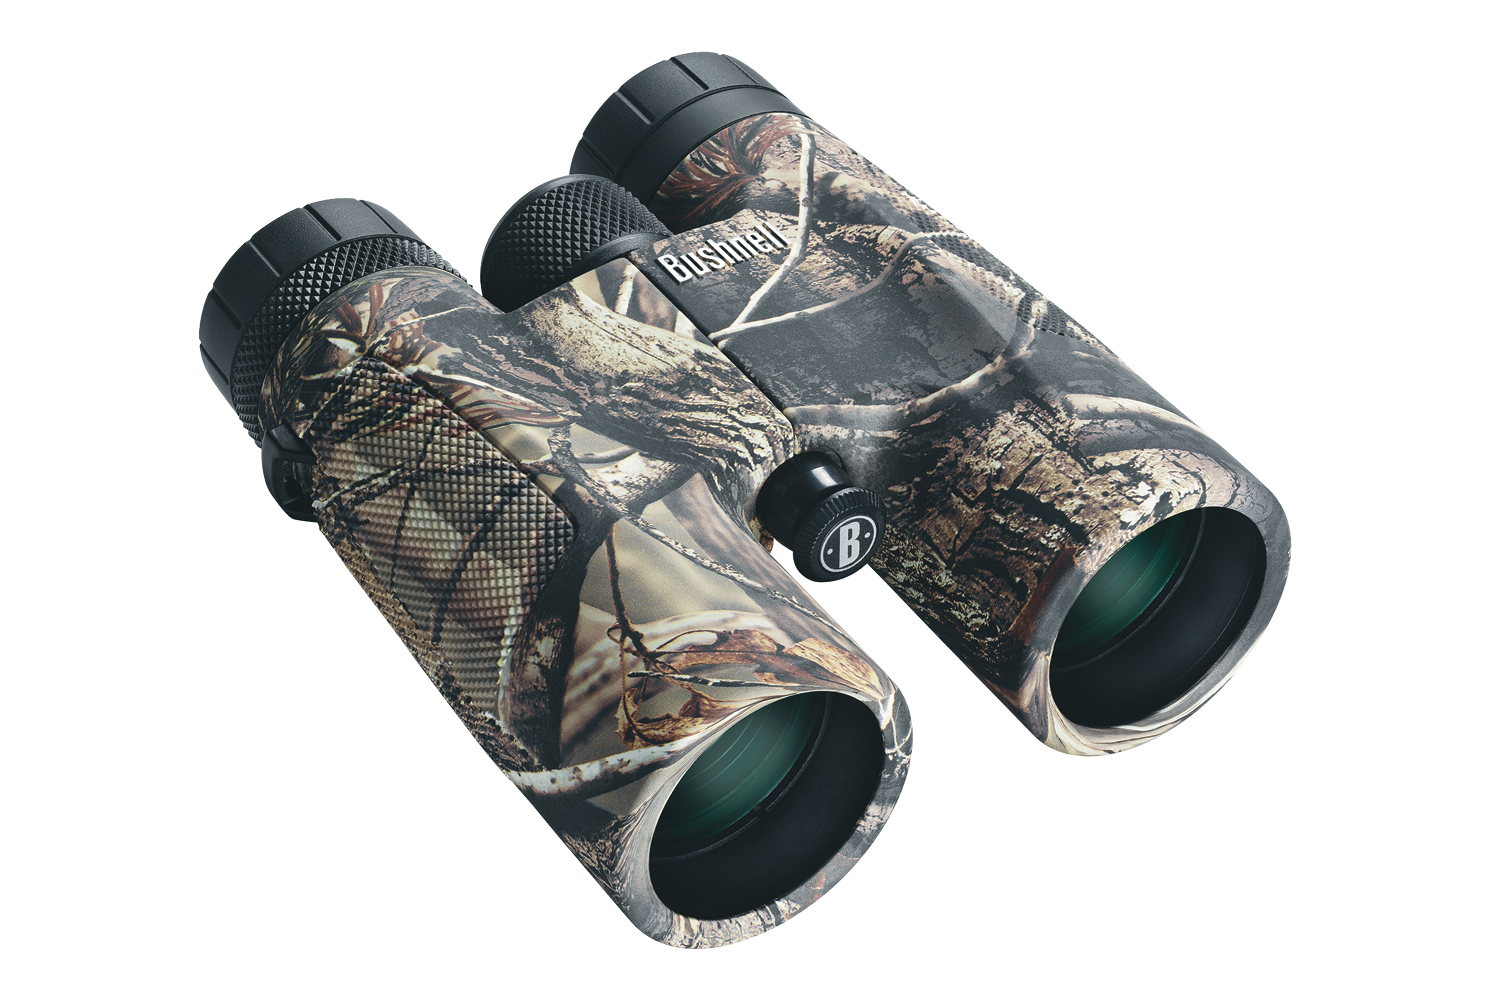 Бинокль Bushnell PowerView ROOF 10x42 camo цена и фото